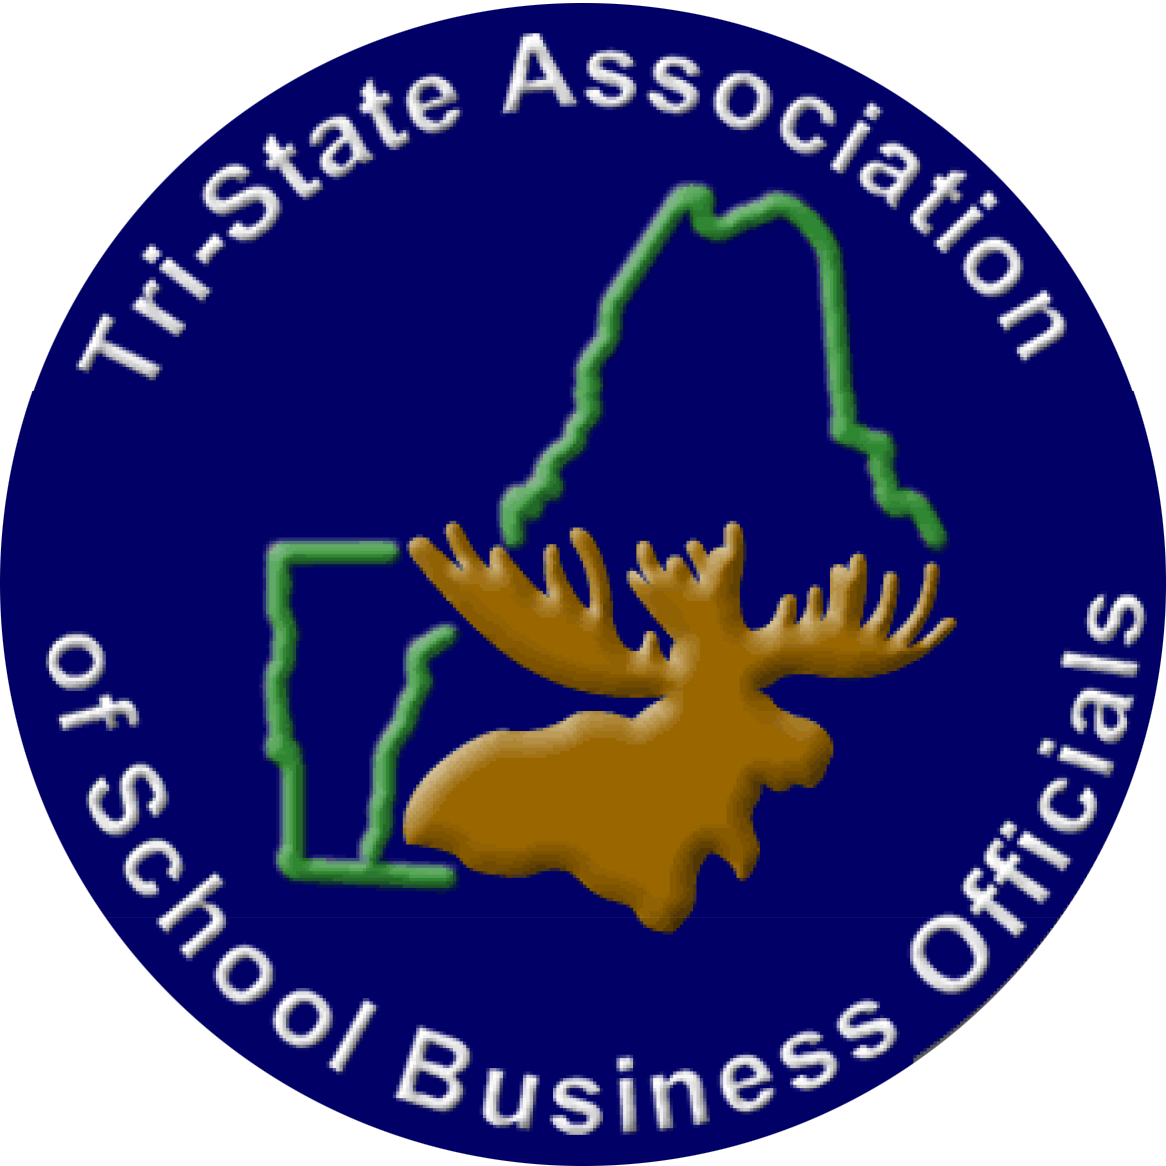 Tri-State Association of School Business Officials